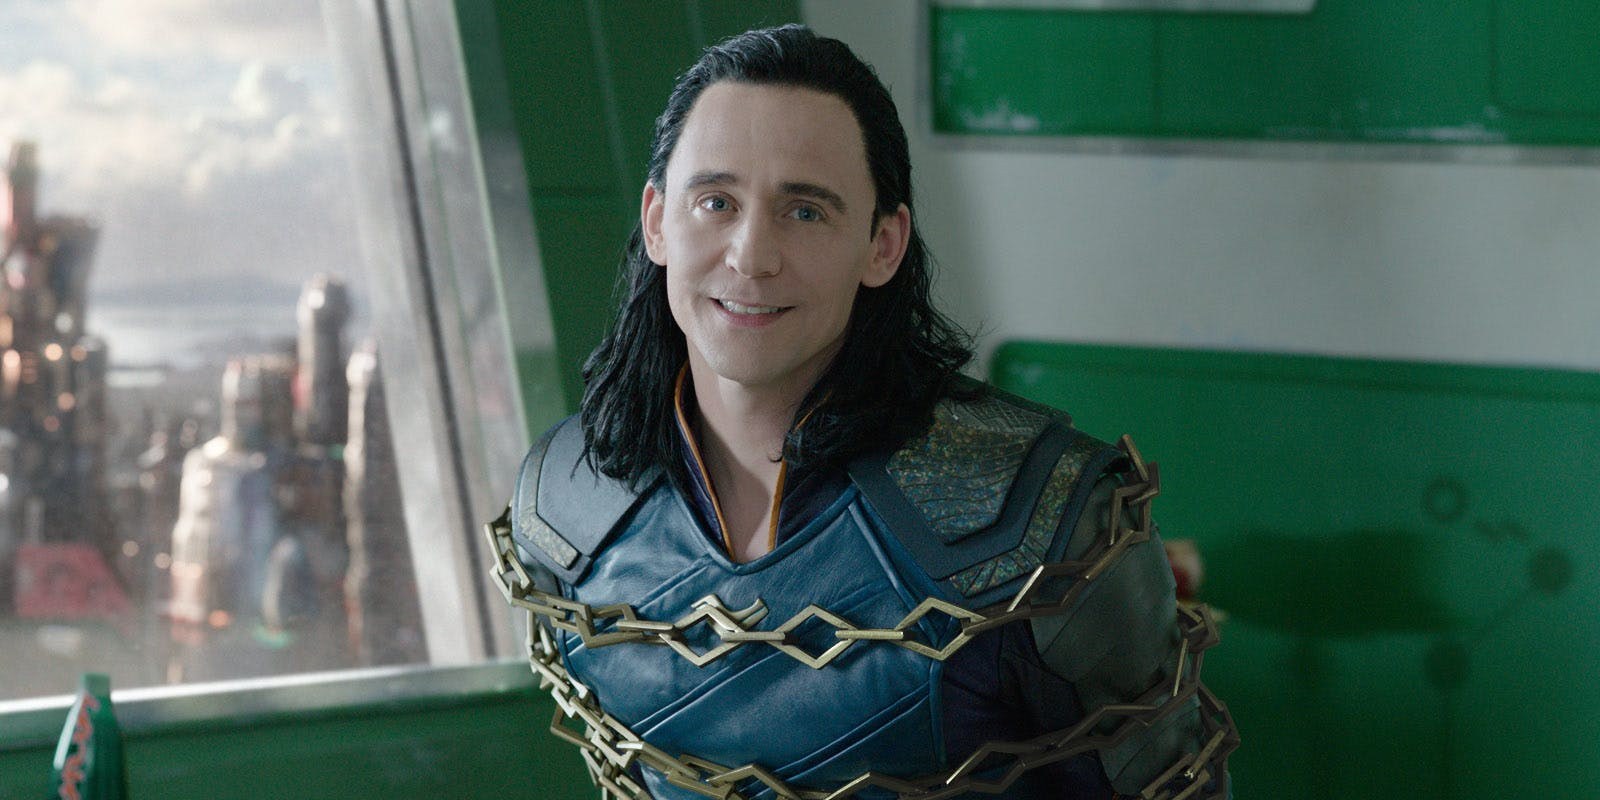 Loki series and other Marvel shows will connect to MCU after Avengers: Endgame